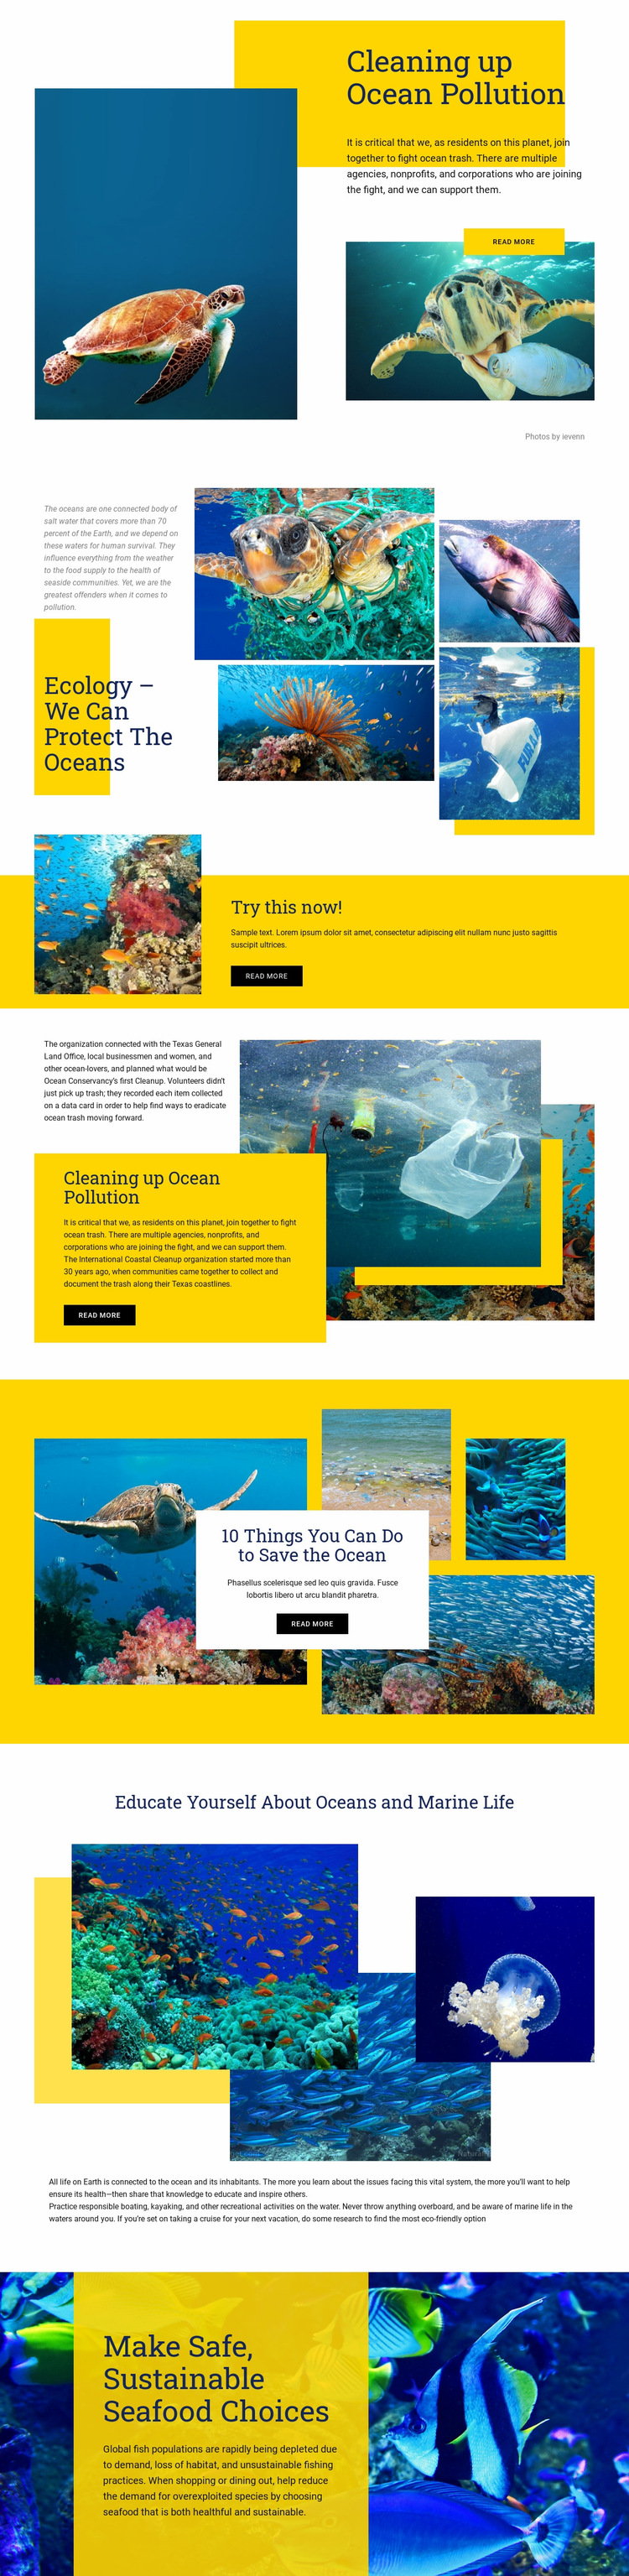 Protect The Oceans Web Page Design